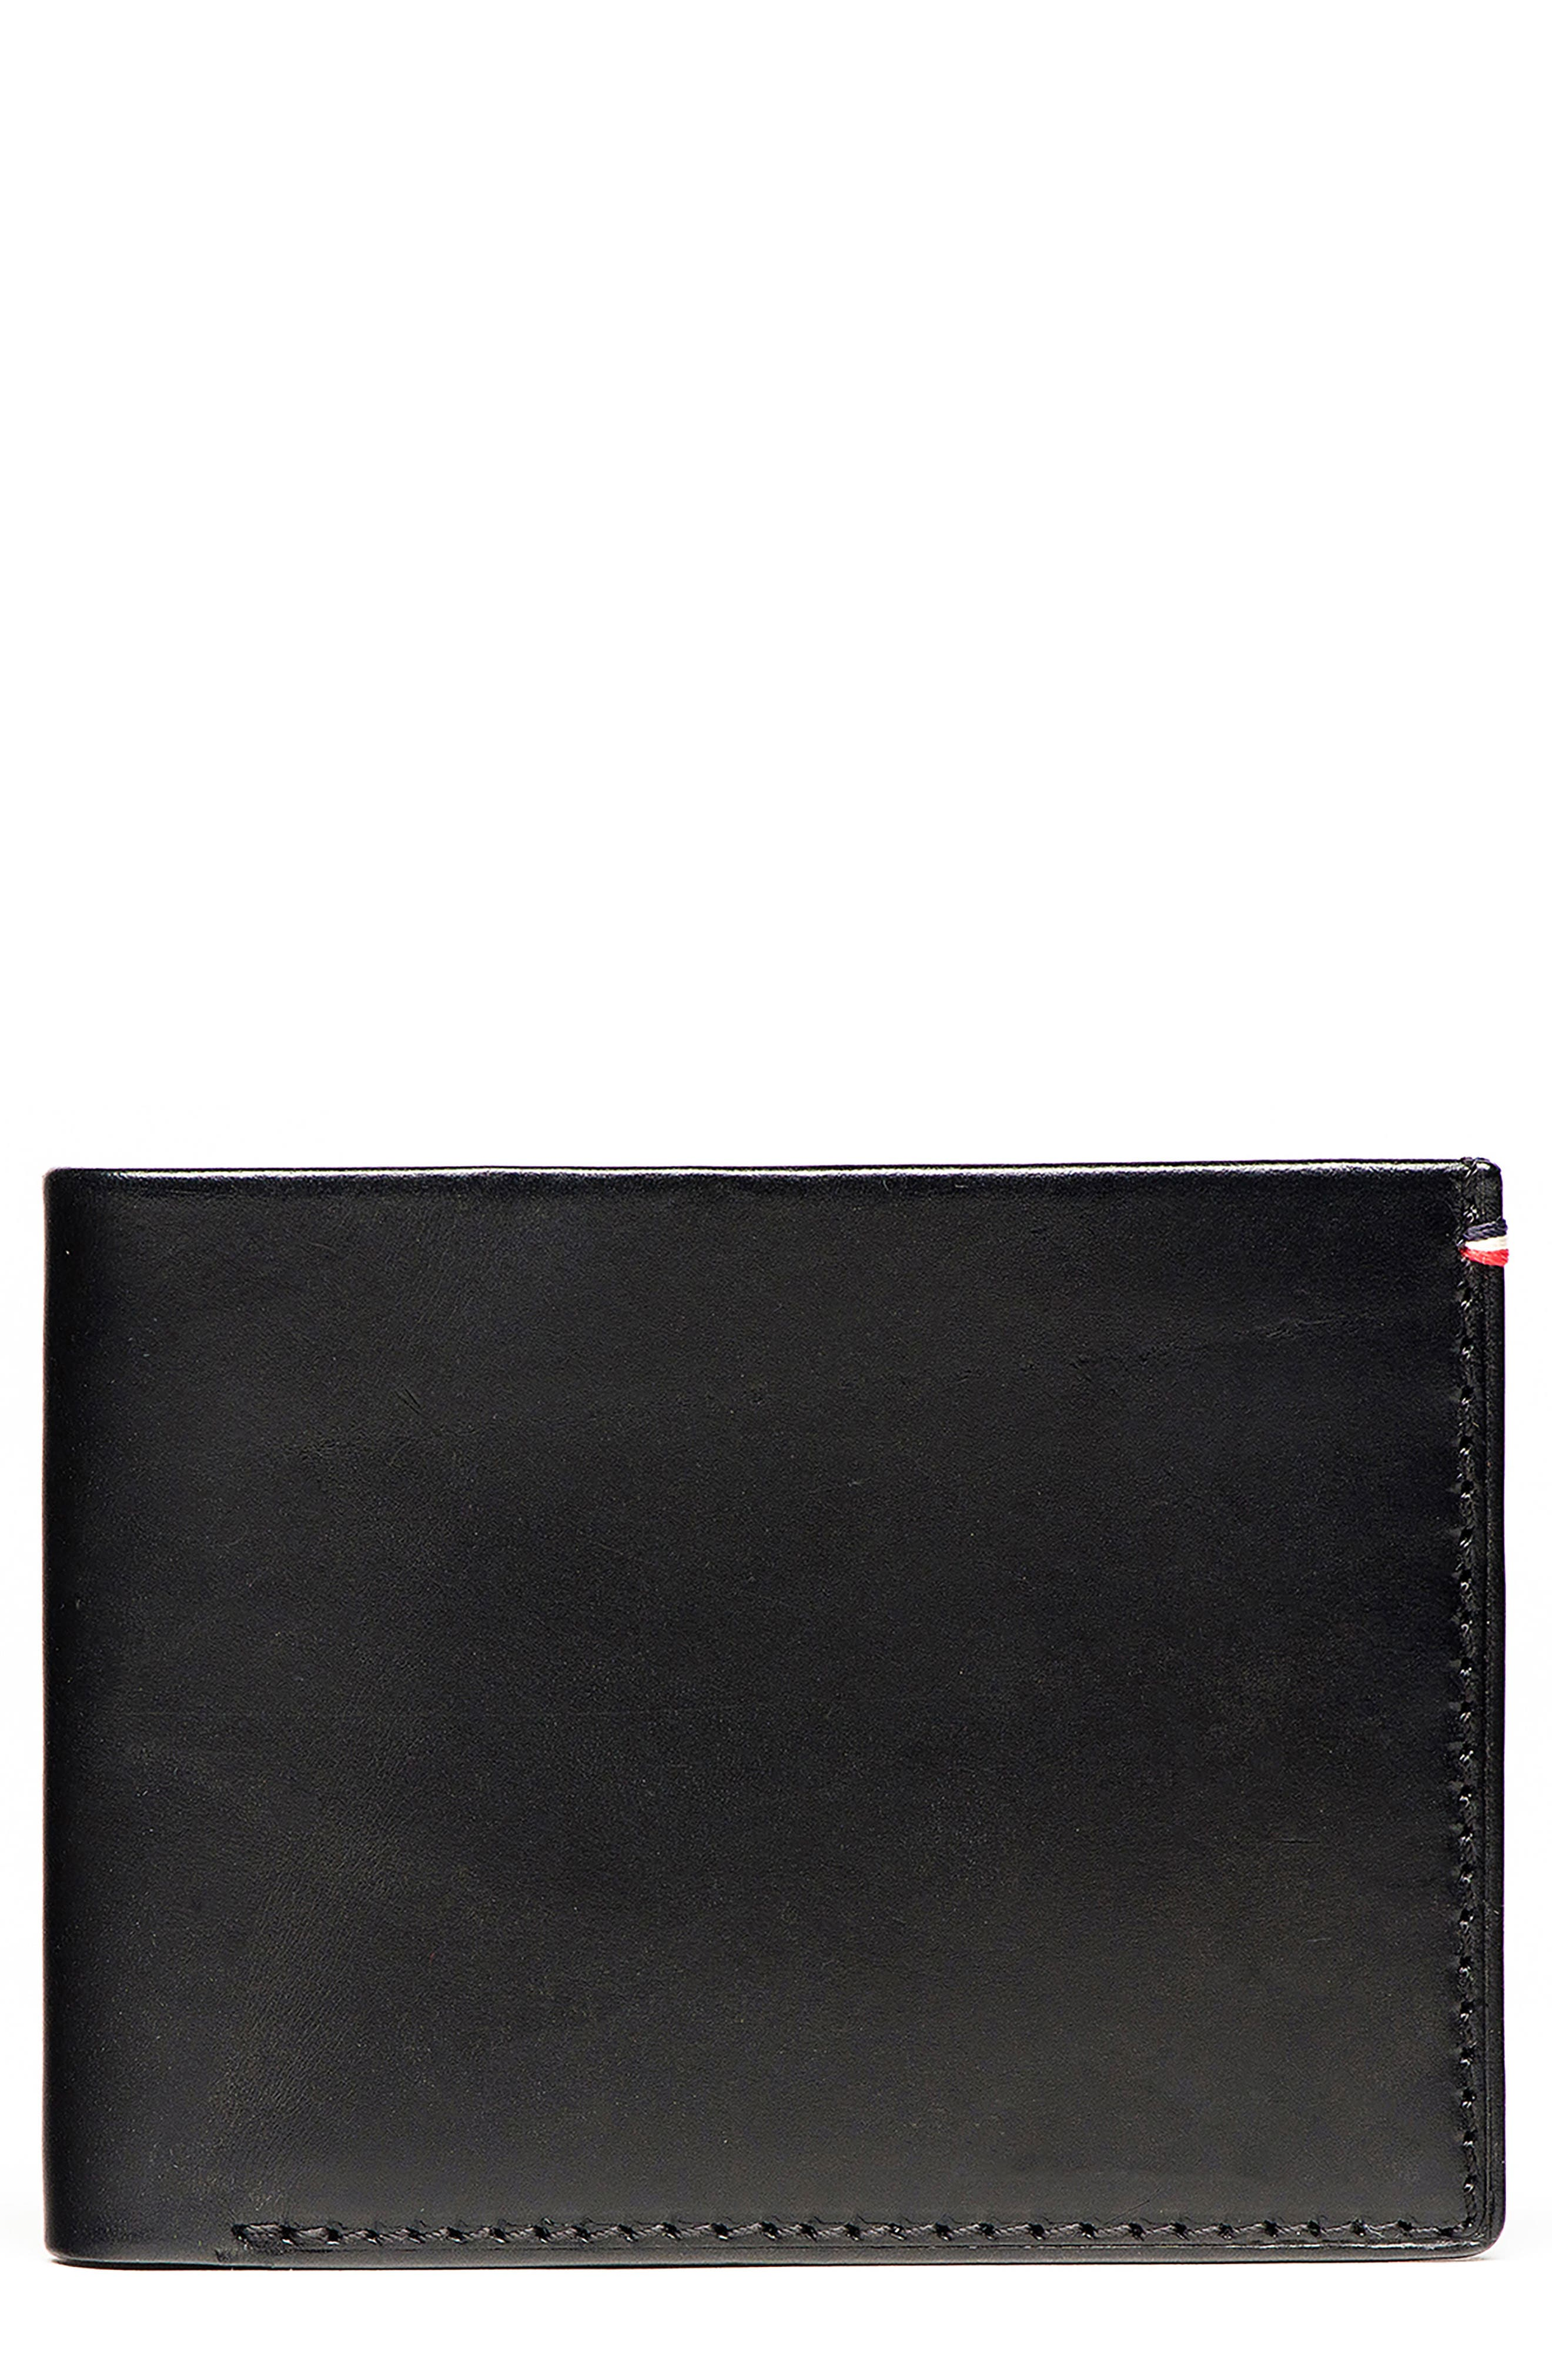 Core Leather Wallet,                         Main,                         color, Black